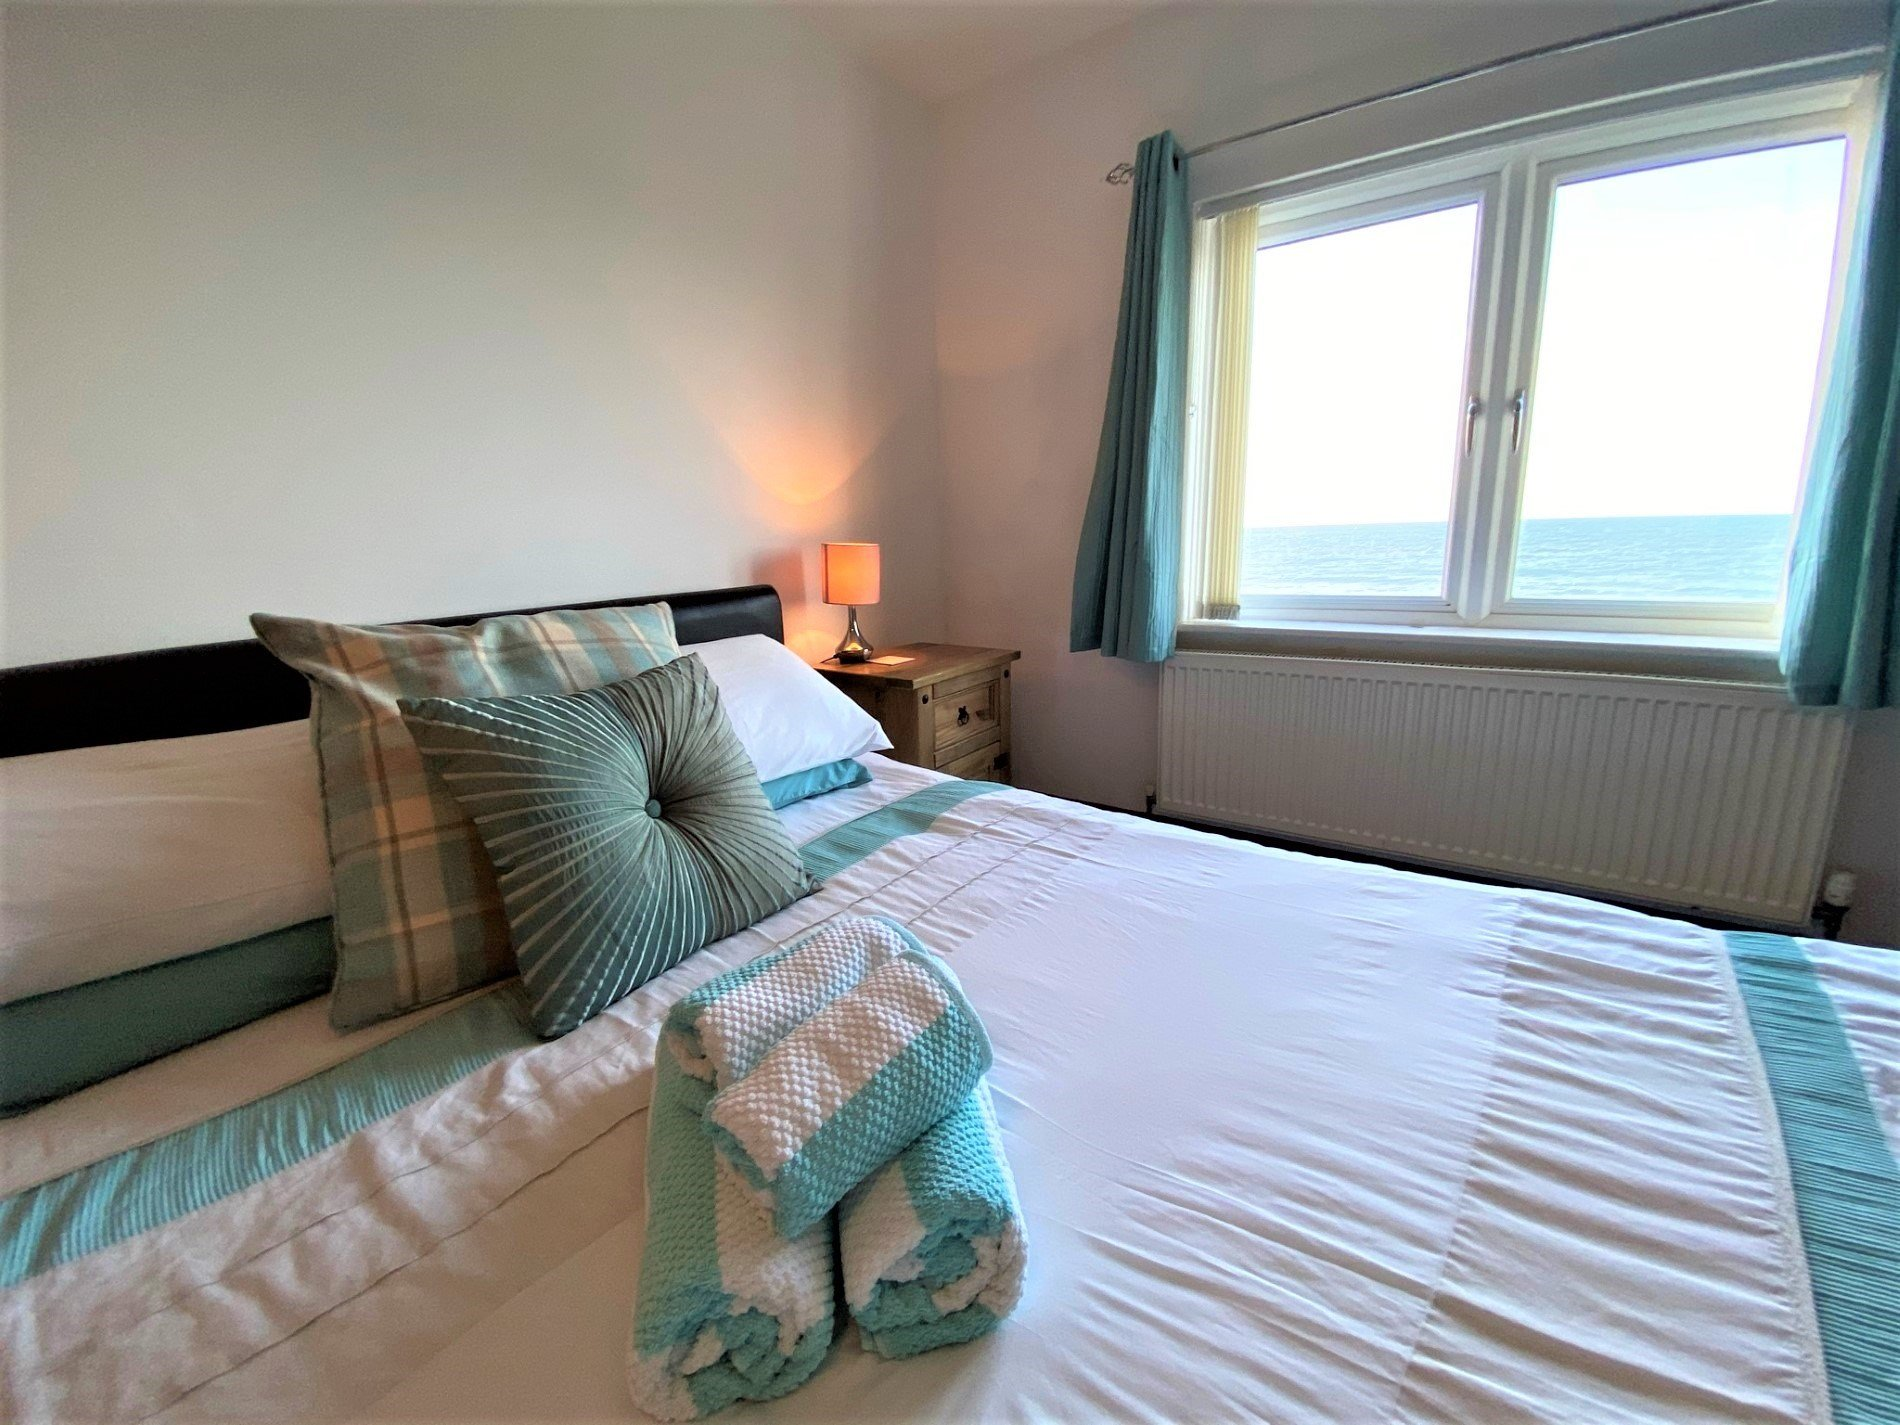 4 Bedroom Cottage in Caernarfon, Snowdonia, North Wales and Cheshire